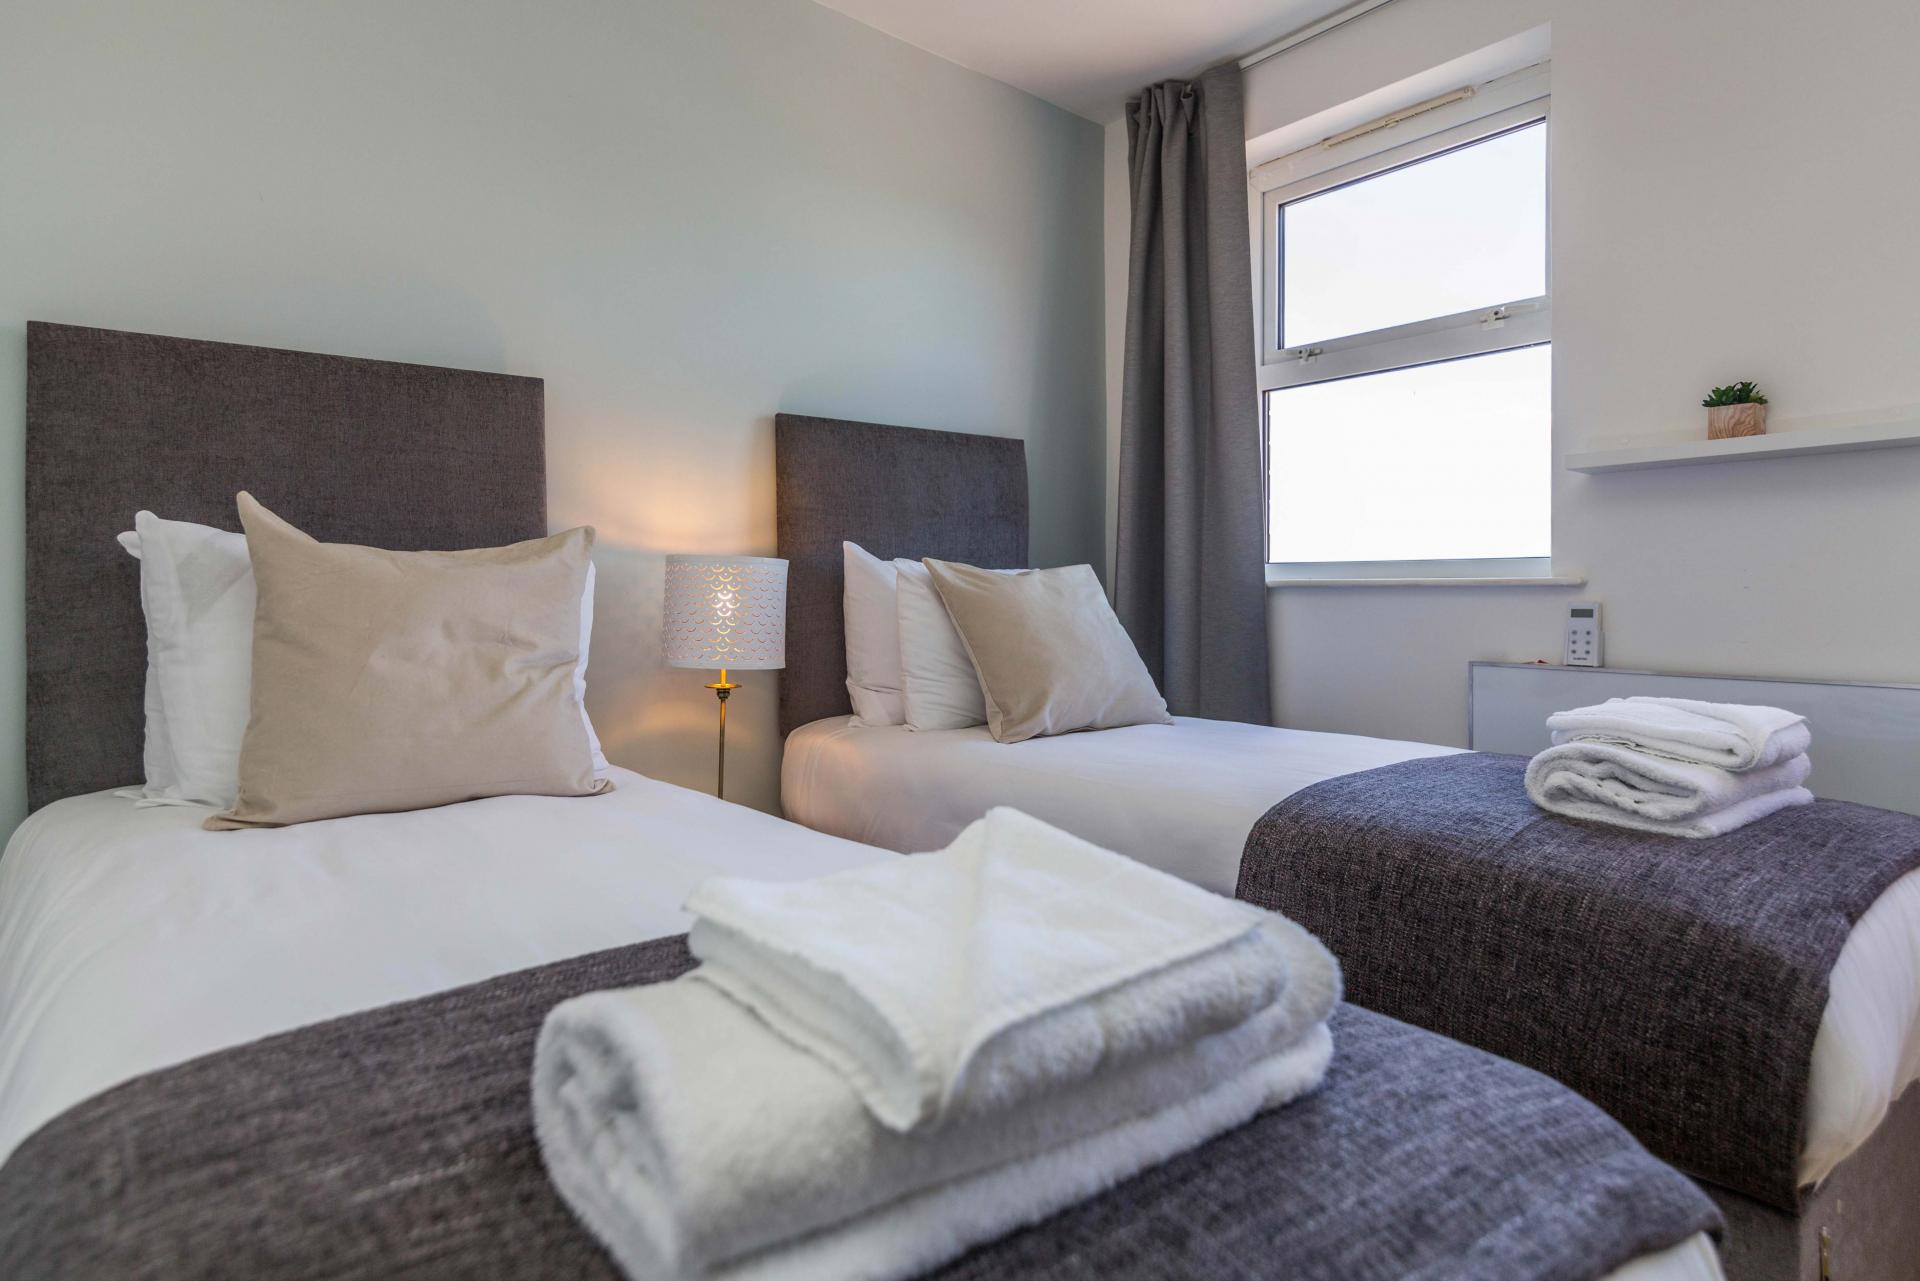 Beds at Loughborough Road Apartment, West Bridgford, Nottingham - Citybase Apartments